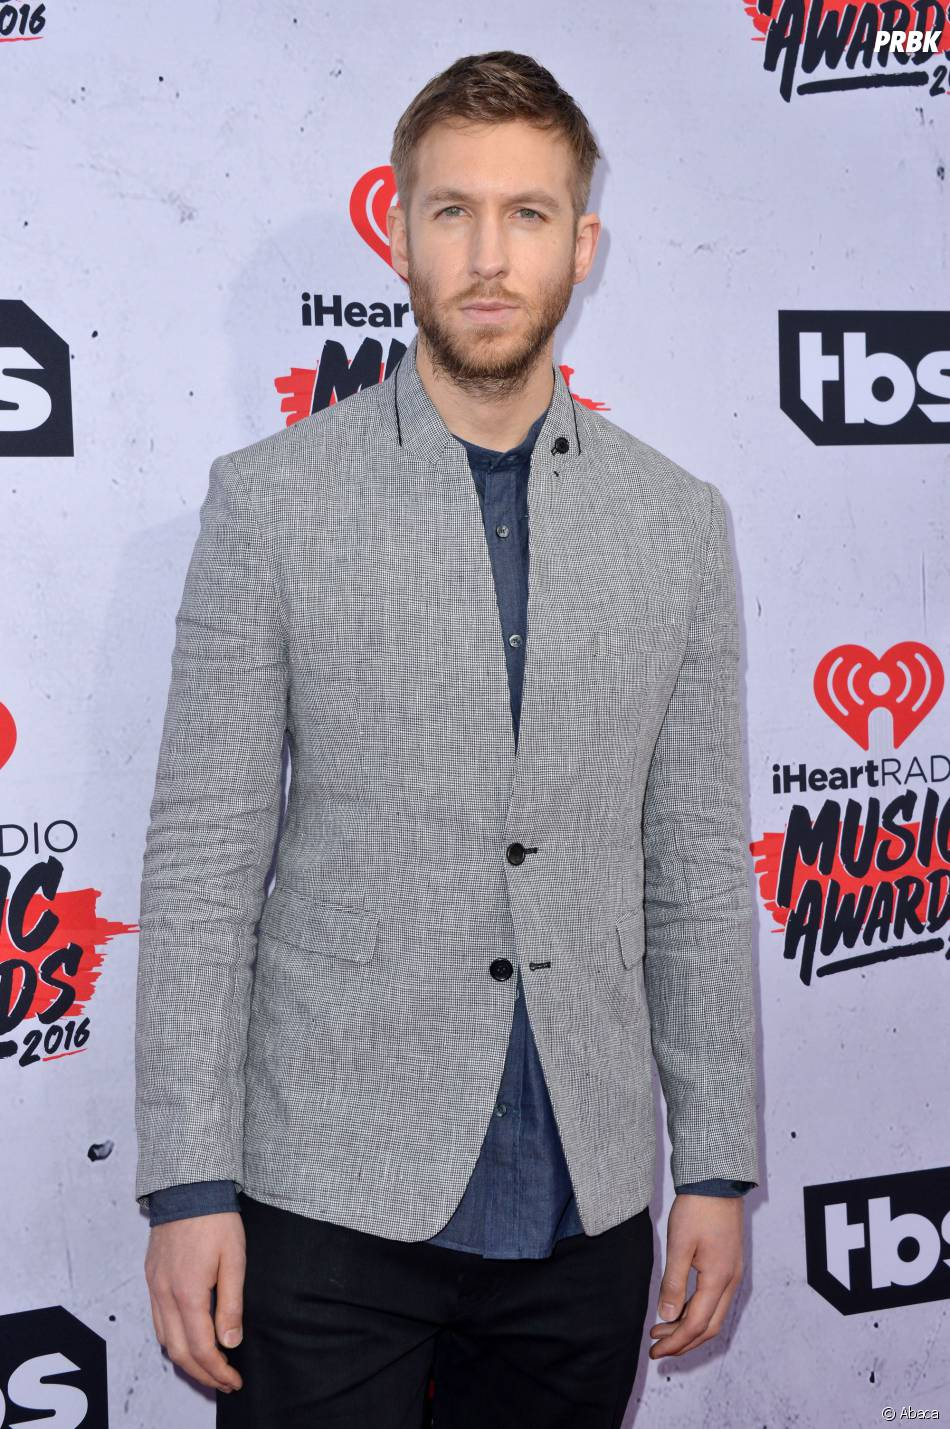 Calvin Harris aux iHeartRadio Music Awards 2016 le 3 avril à Los Angeles